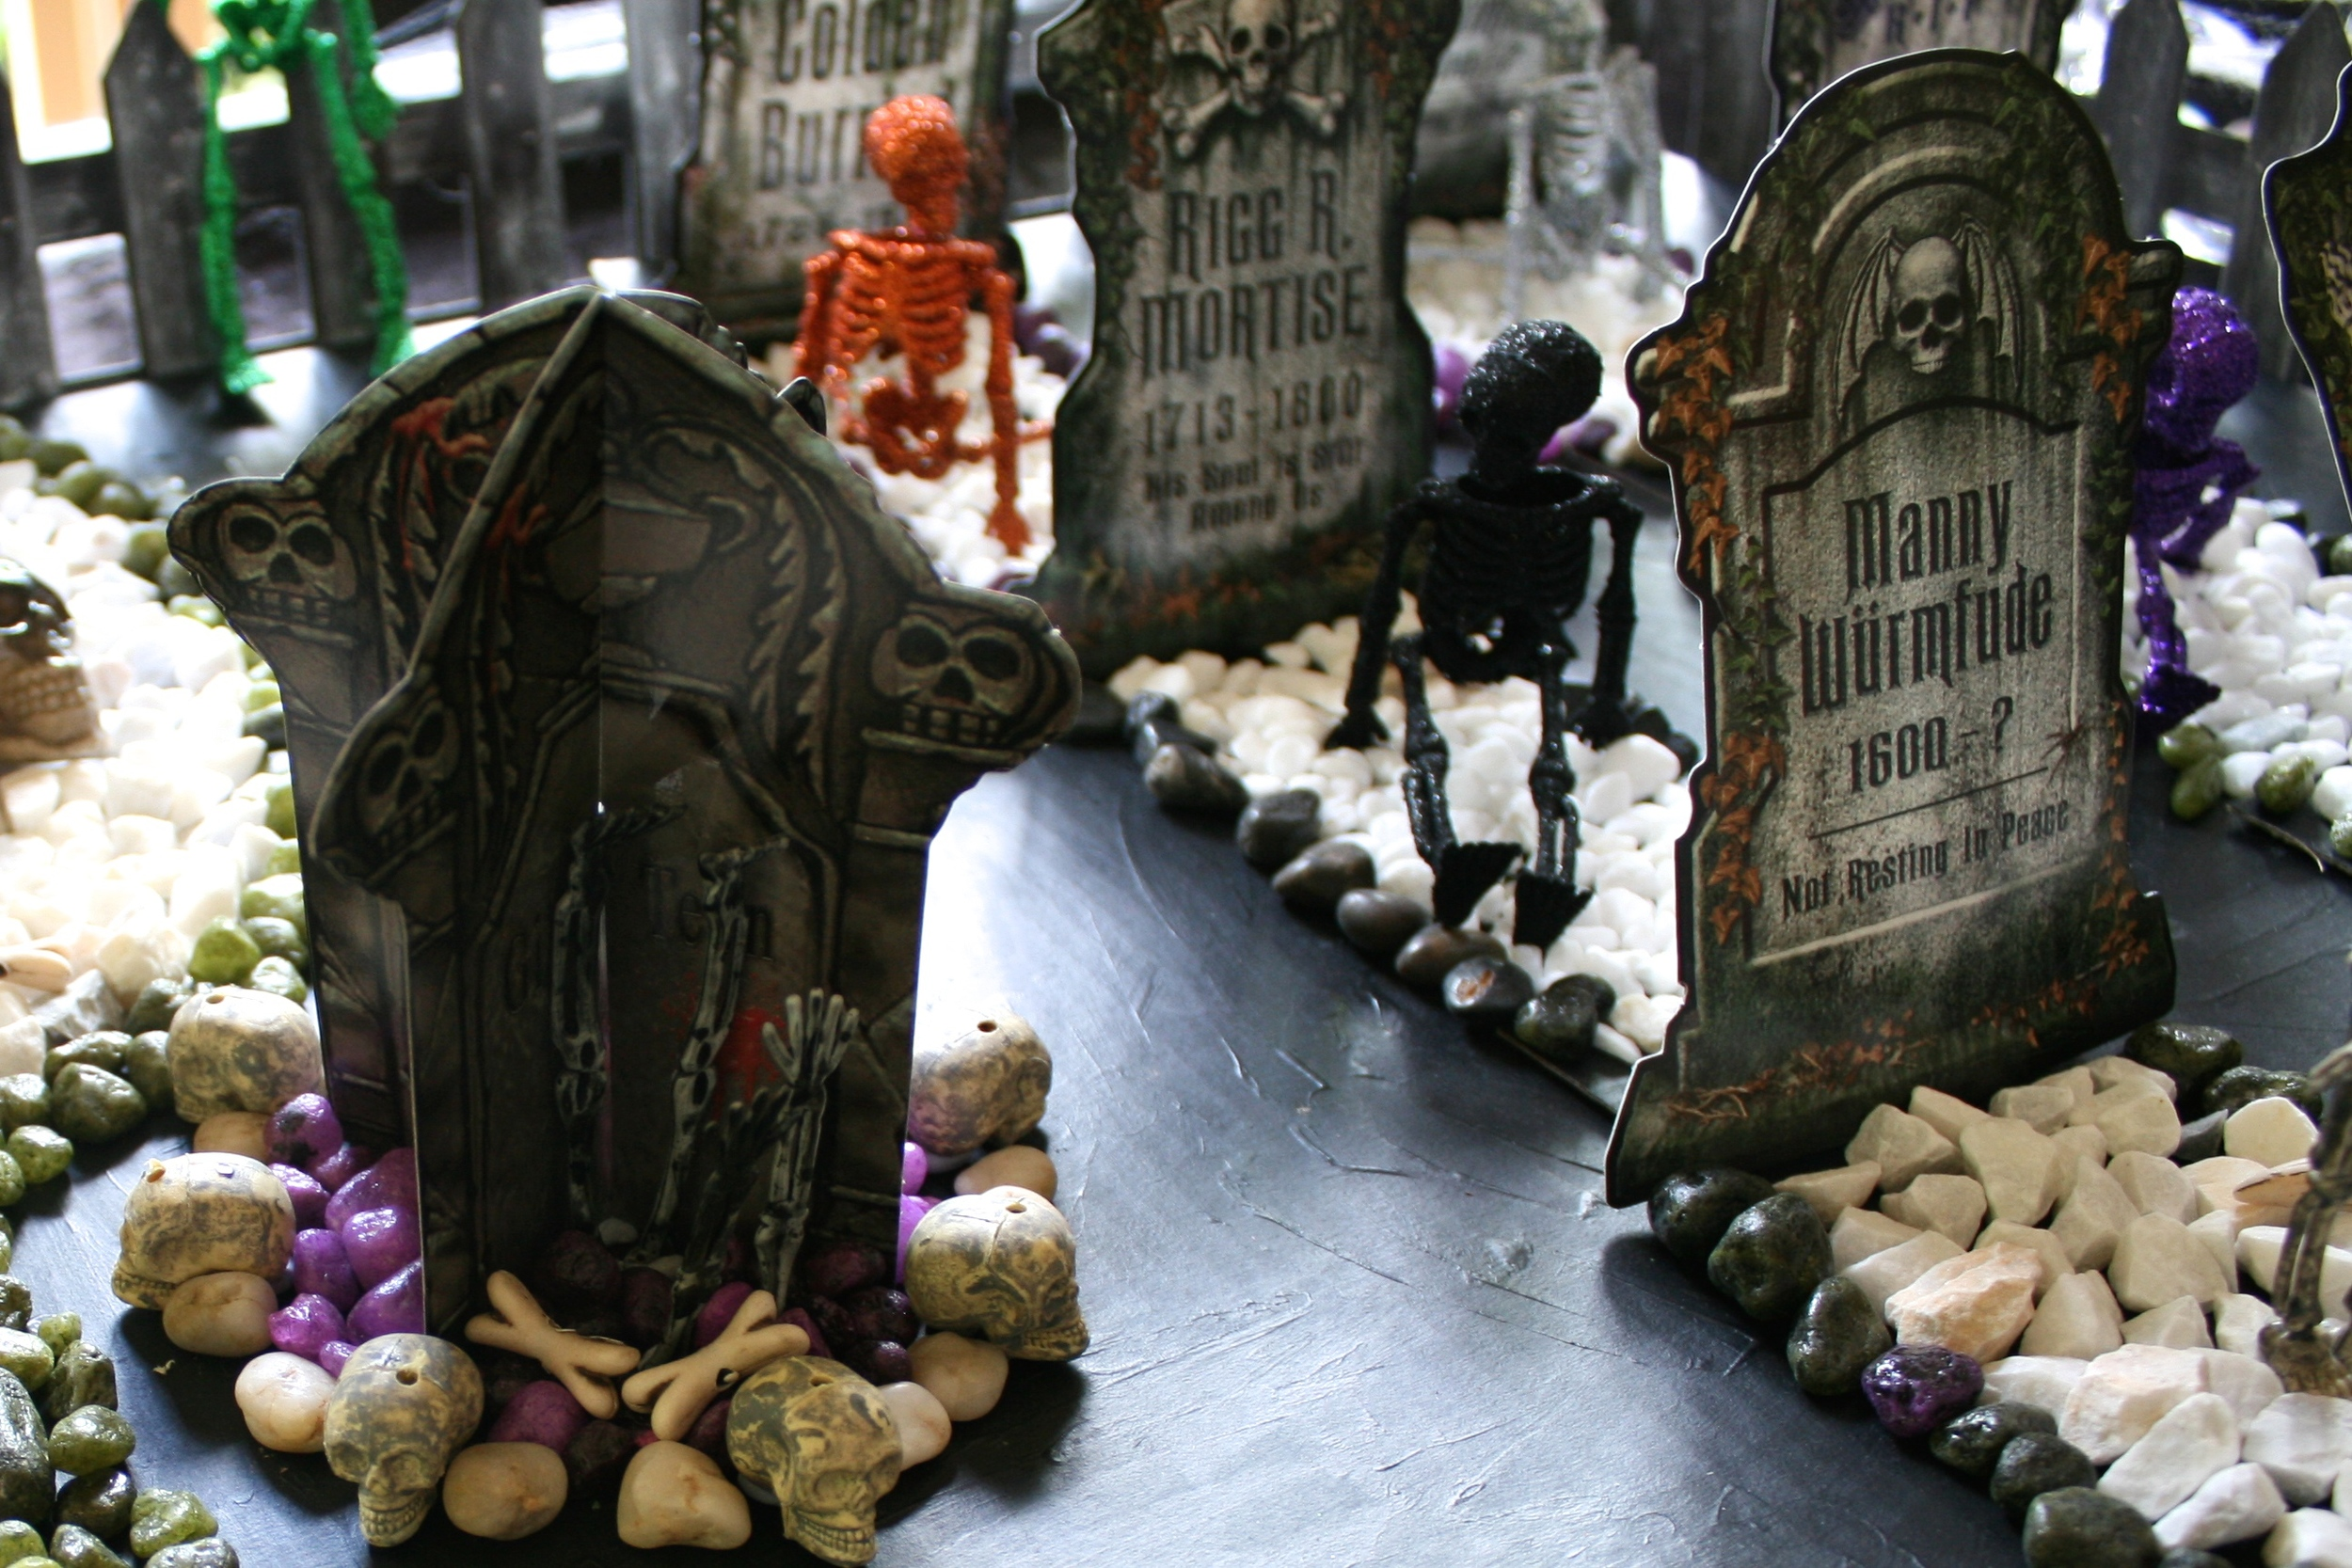 Halloween Graveyard - use dissected skeletons and small jewelry bones to decorate the graveyard